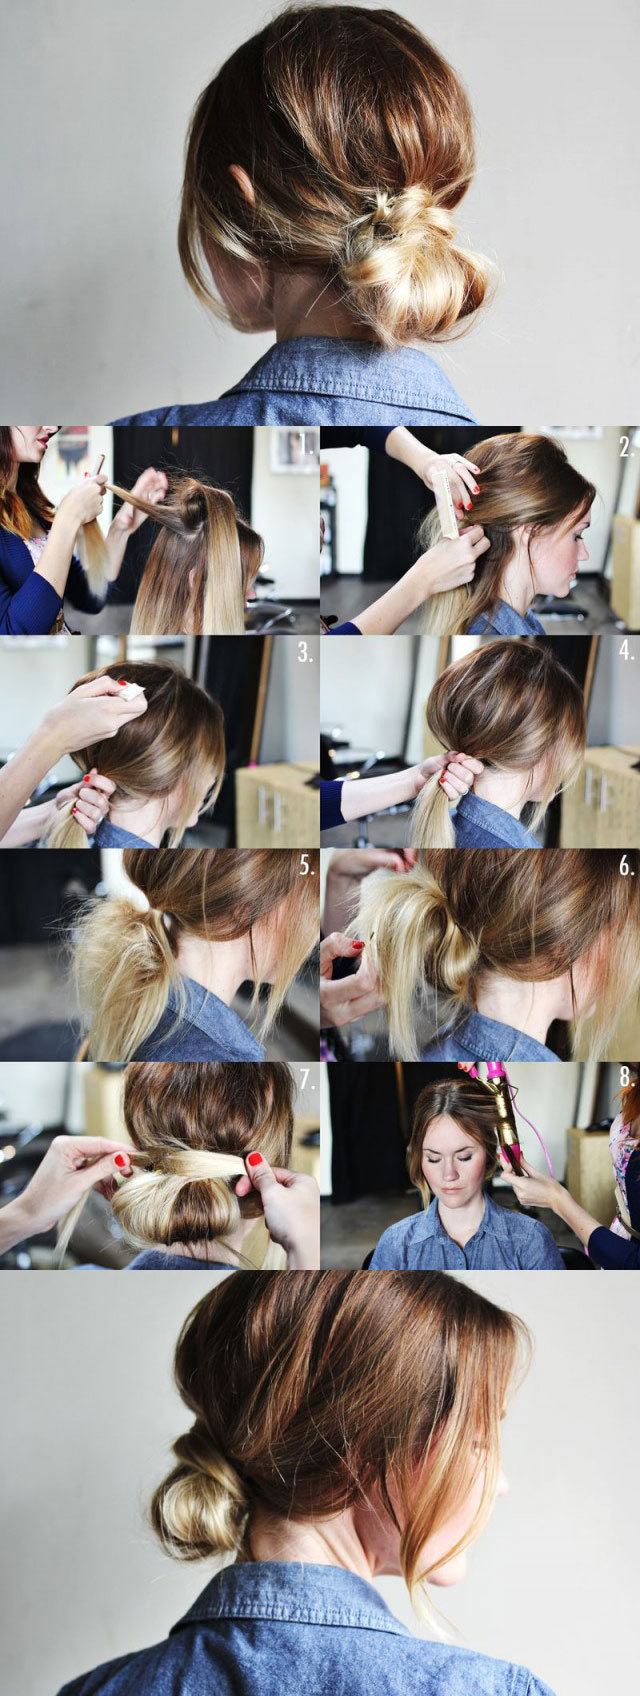 Hairstyles for Long Hair Step by Step-13